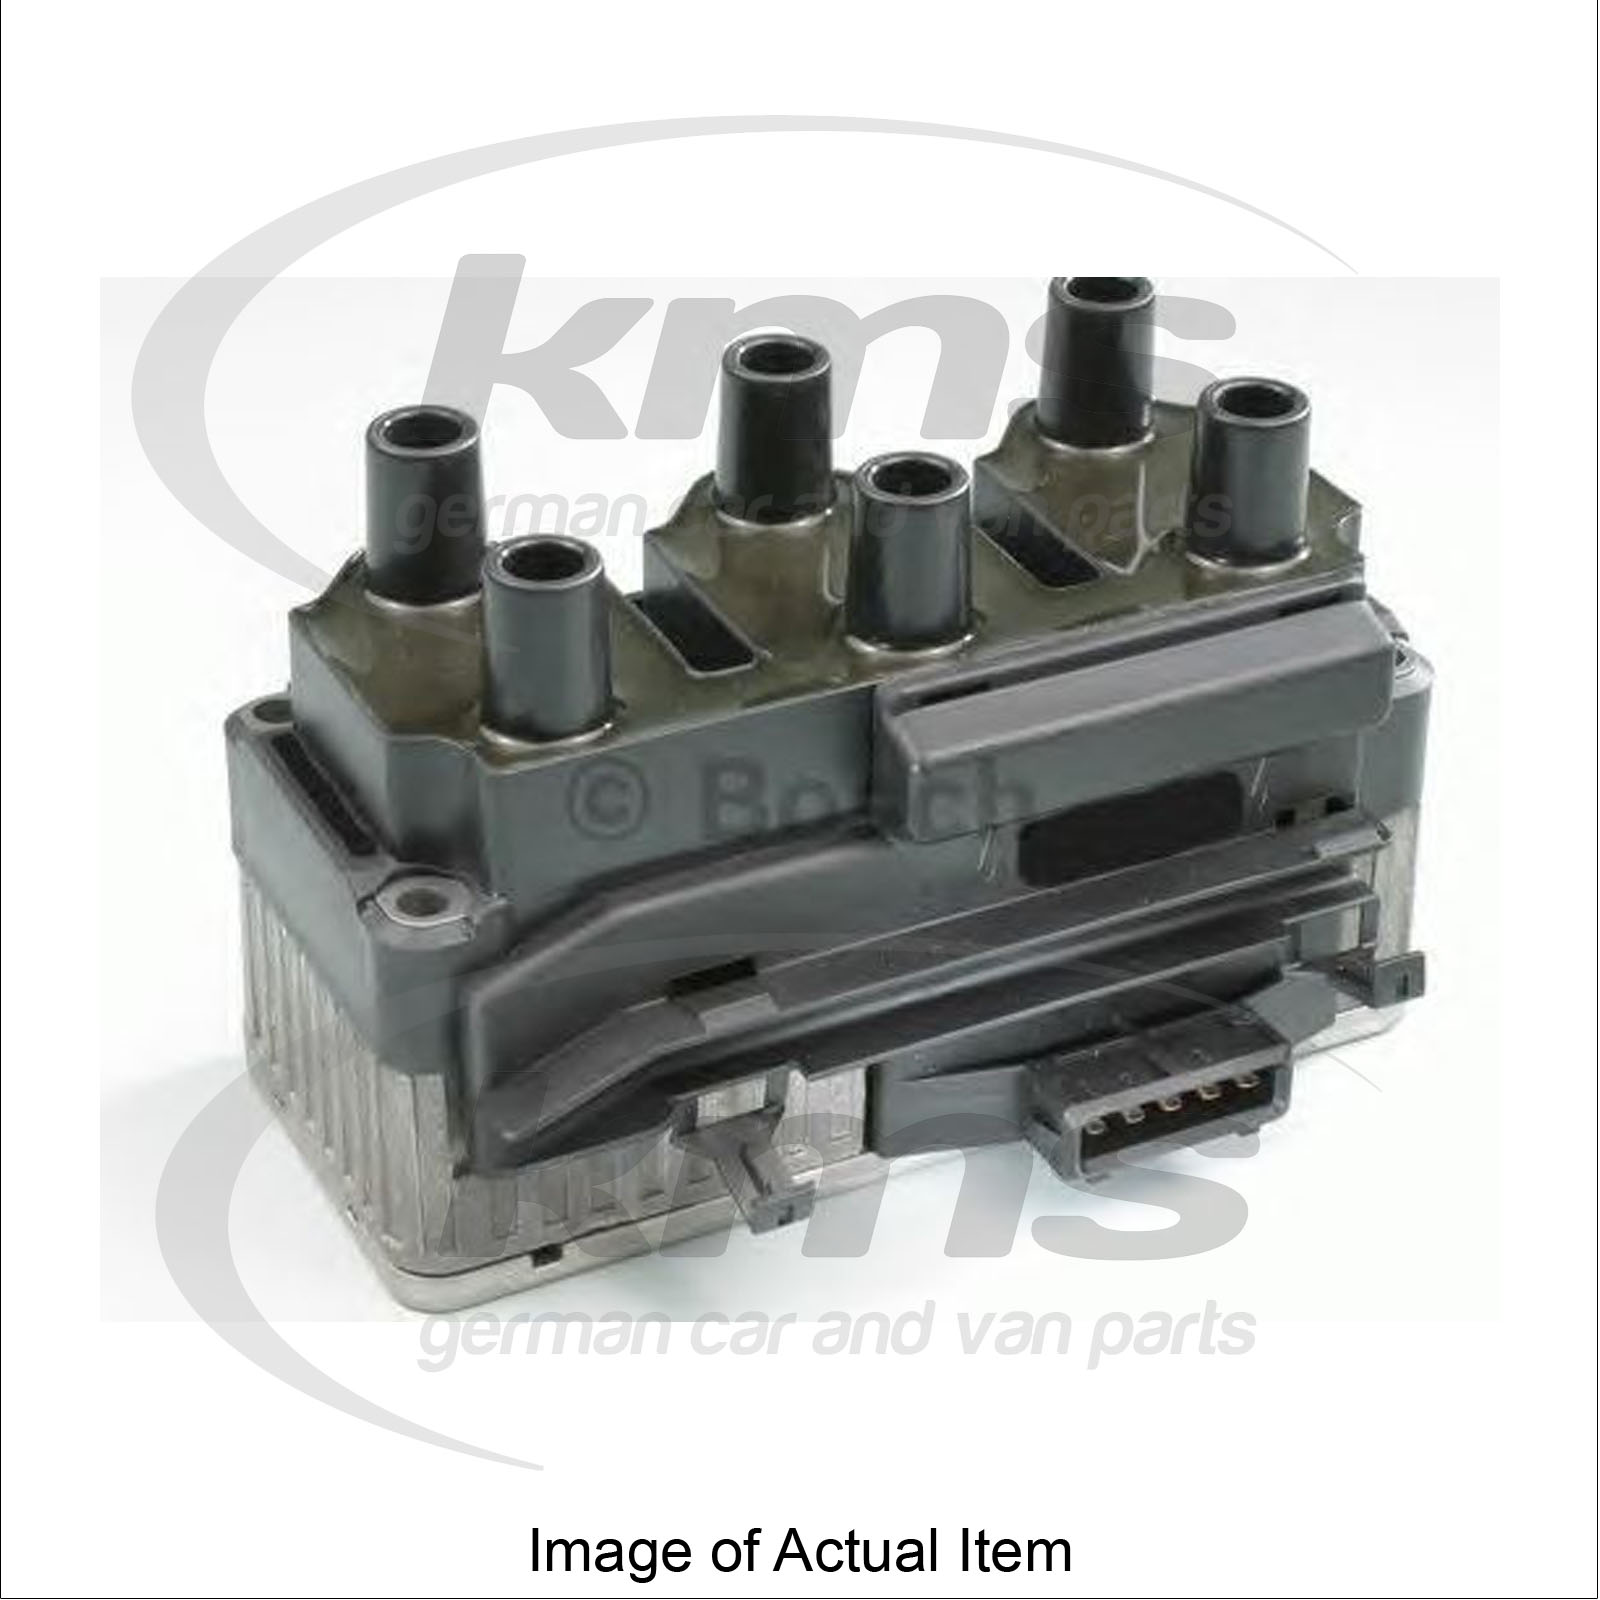 vw coil wiring mk 3 ignition coil vw golf mk iii estate (1h5) 2.9 vr6 syncro ... #9